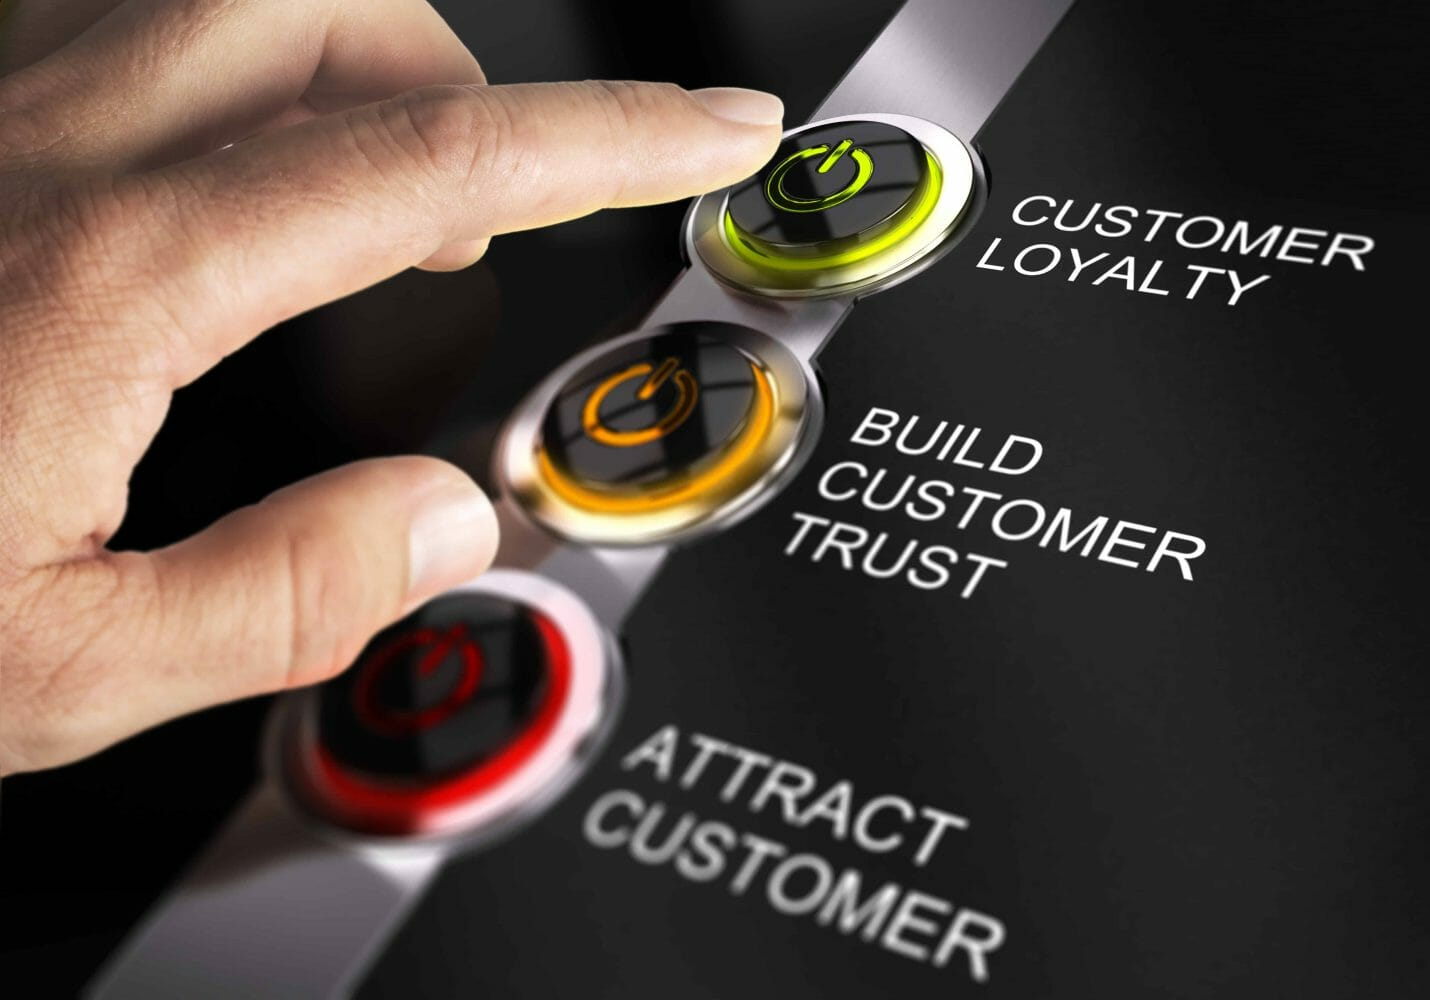 Churn in High Frequency Retail: Defining It. Reducing It.